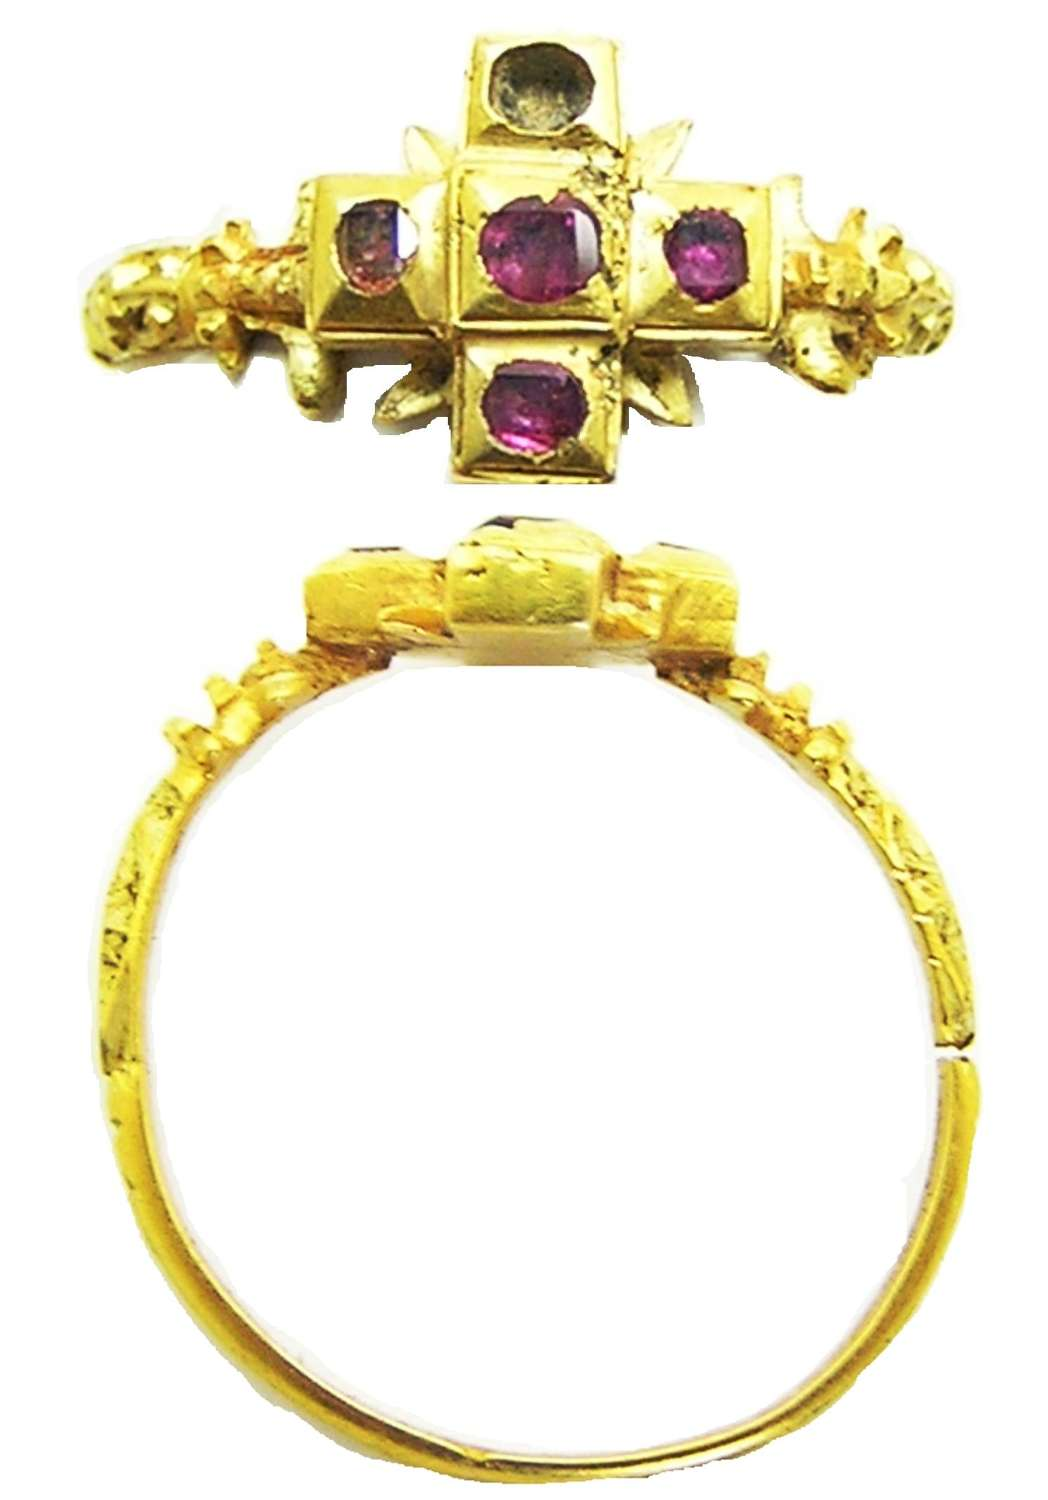 Renaissance Tudor Period gold and ruby finger ring